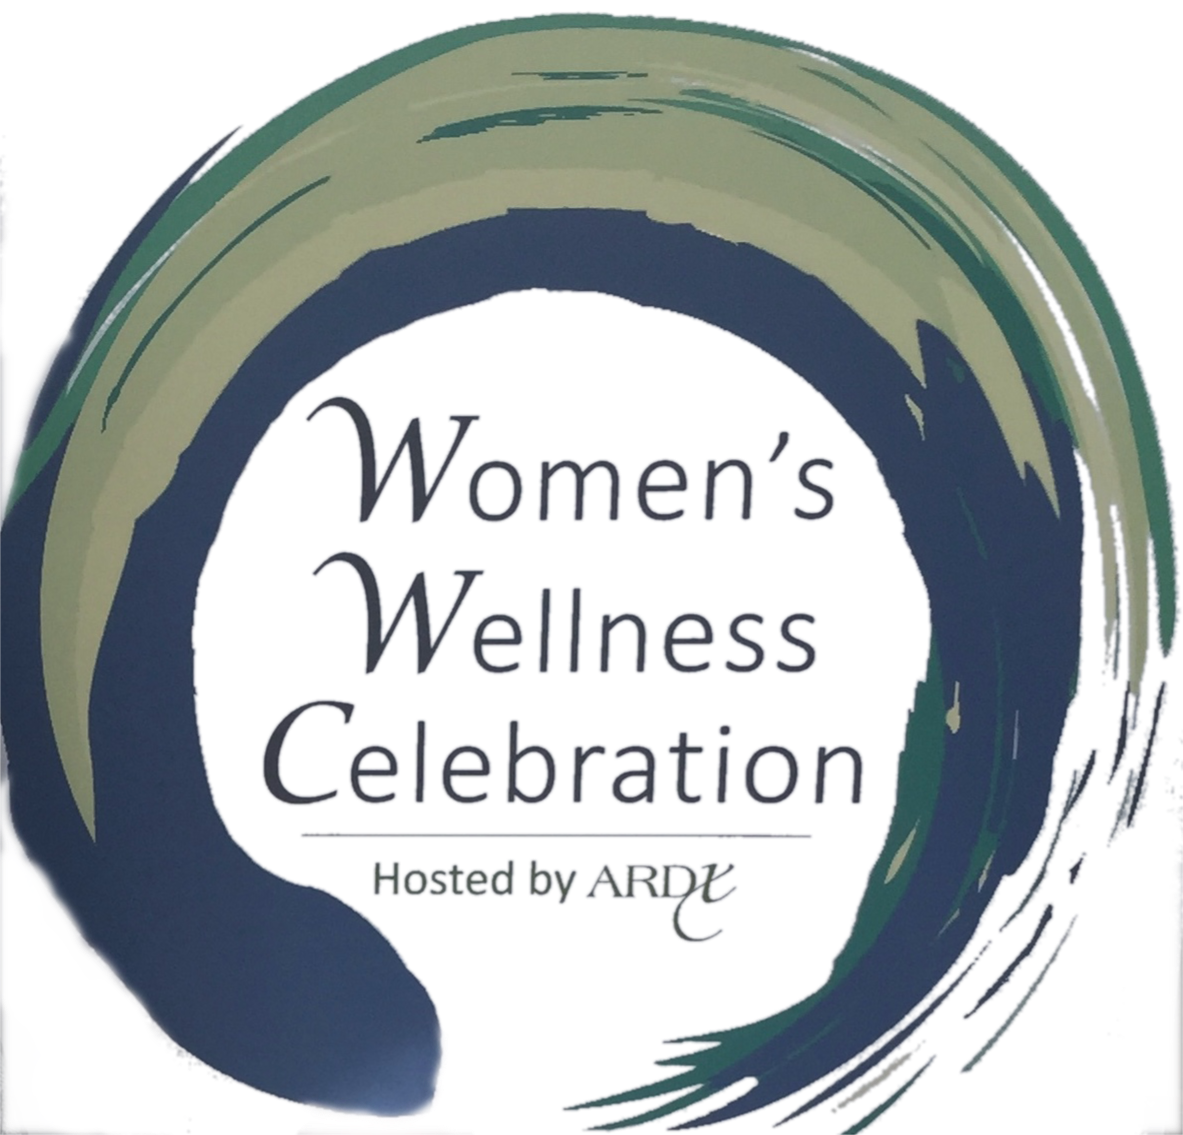 ARDT - Women's Wellness Celebration